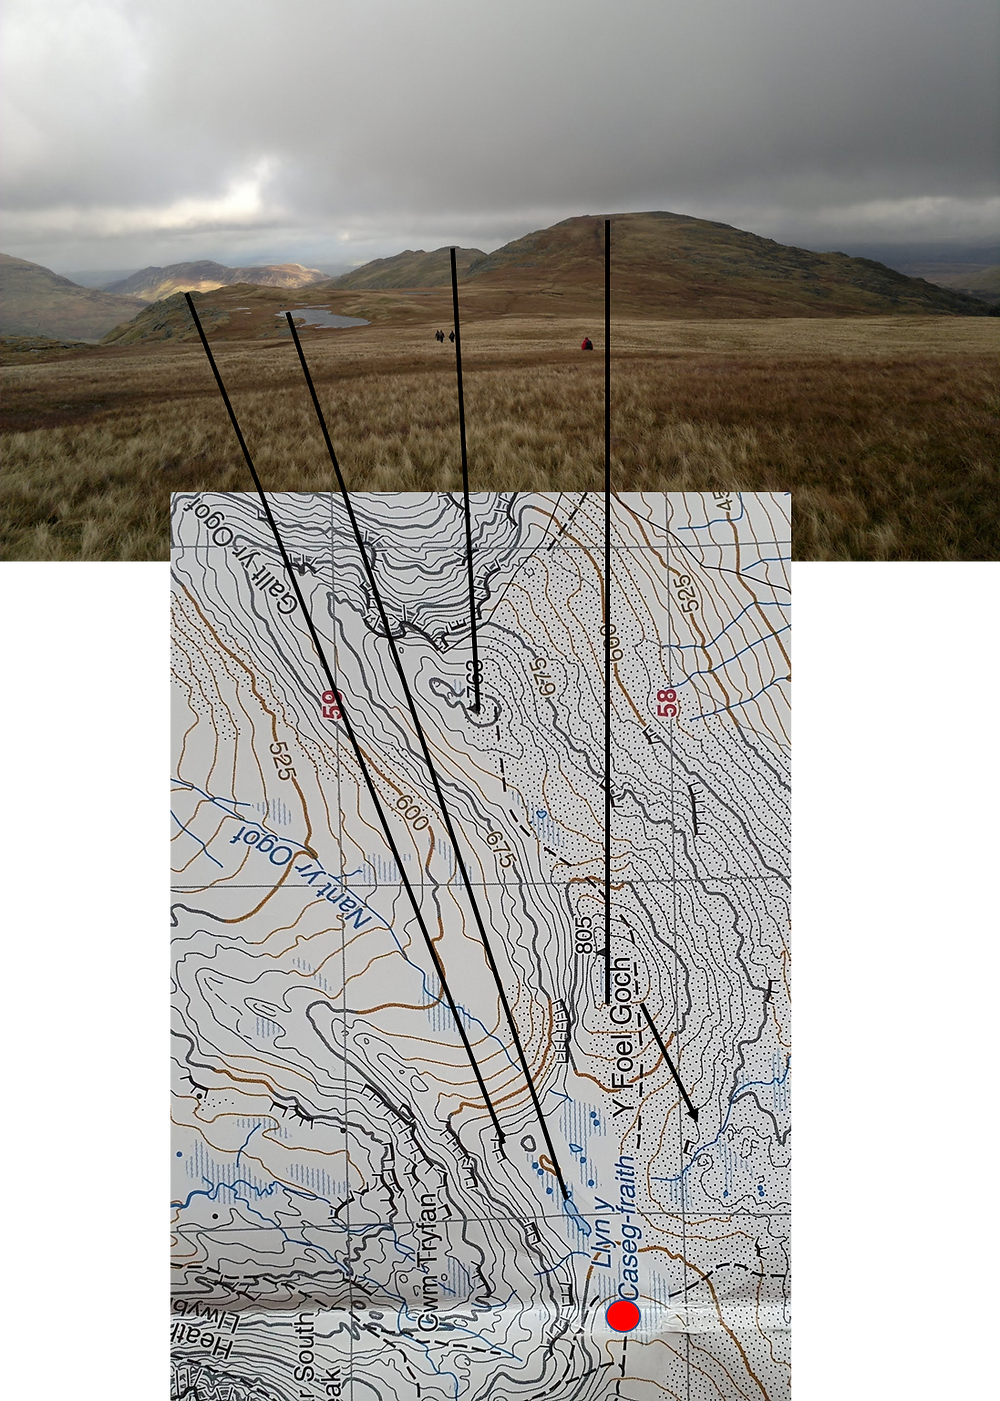 relating the map to the ground contours